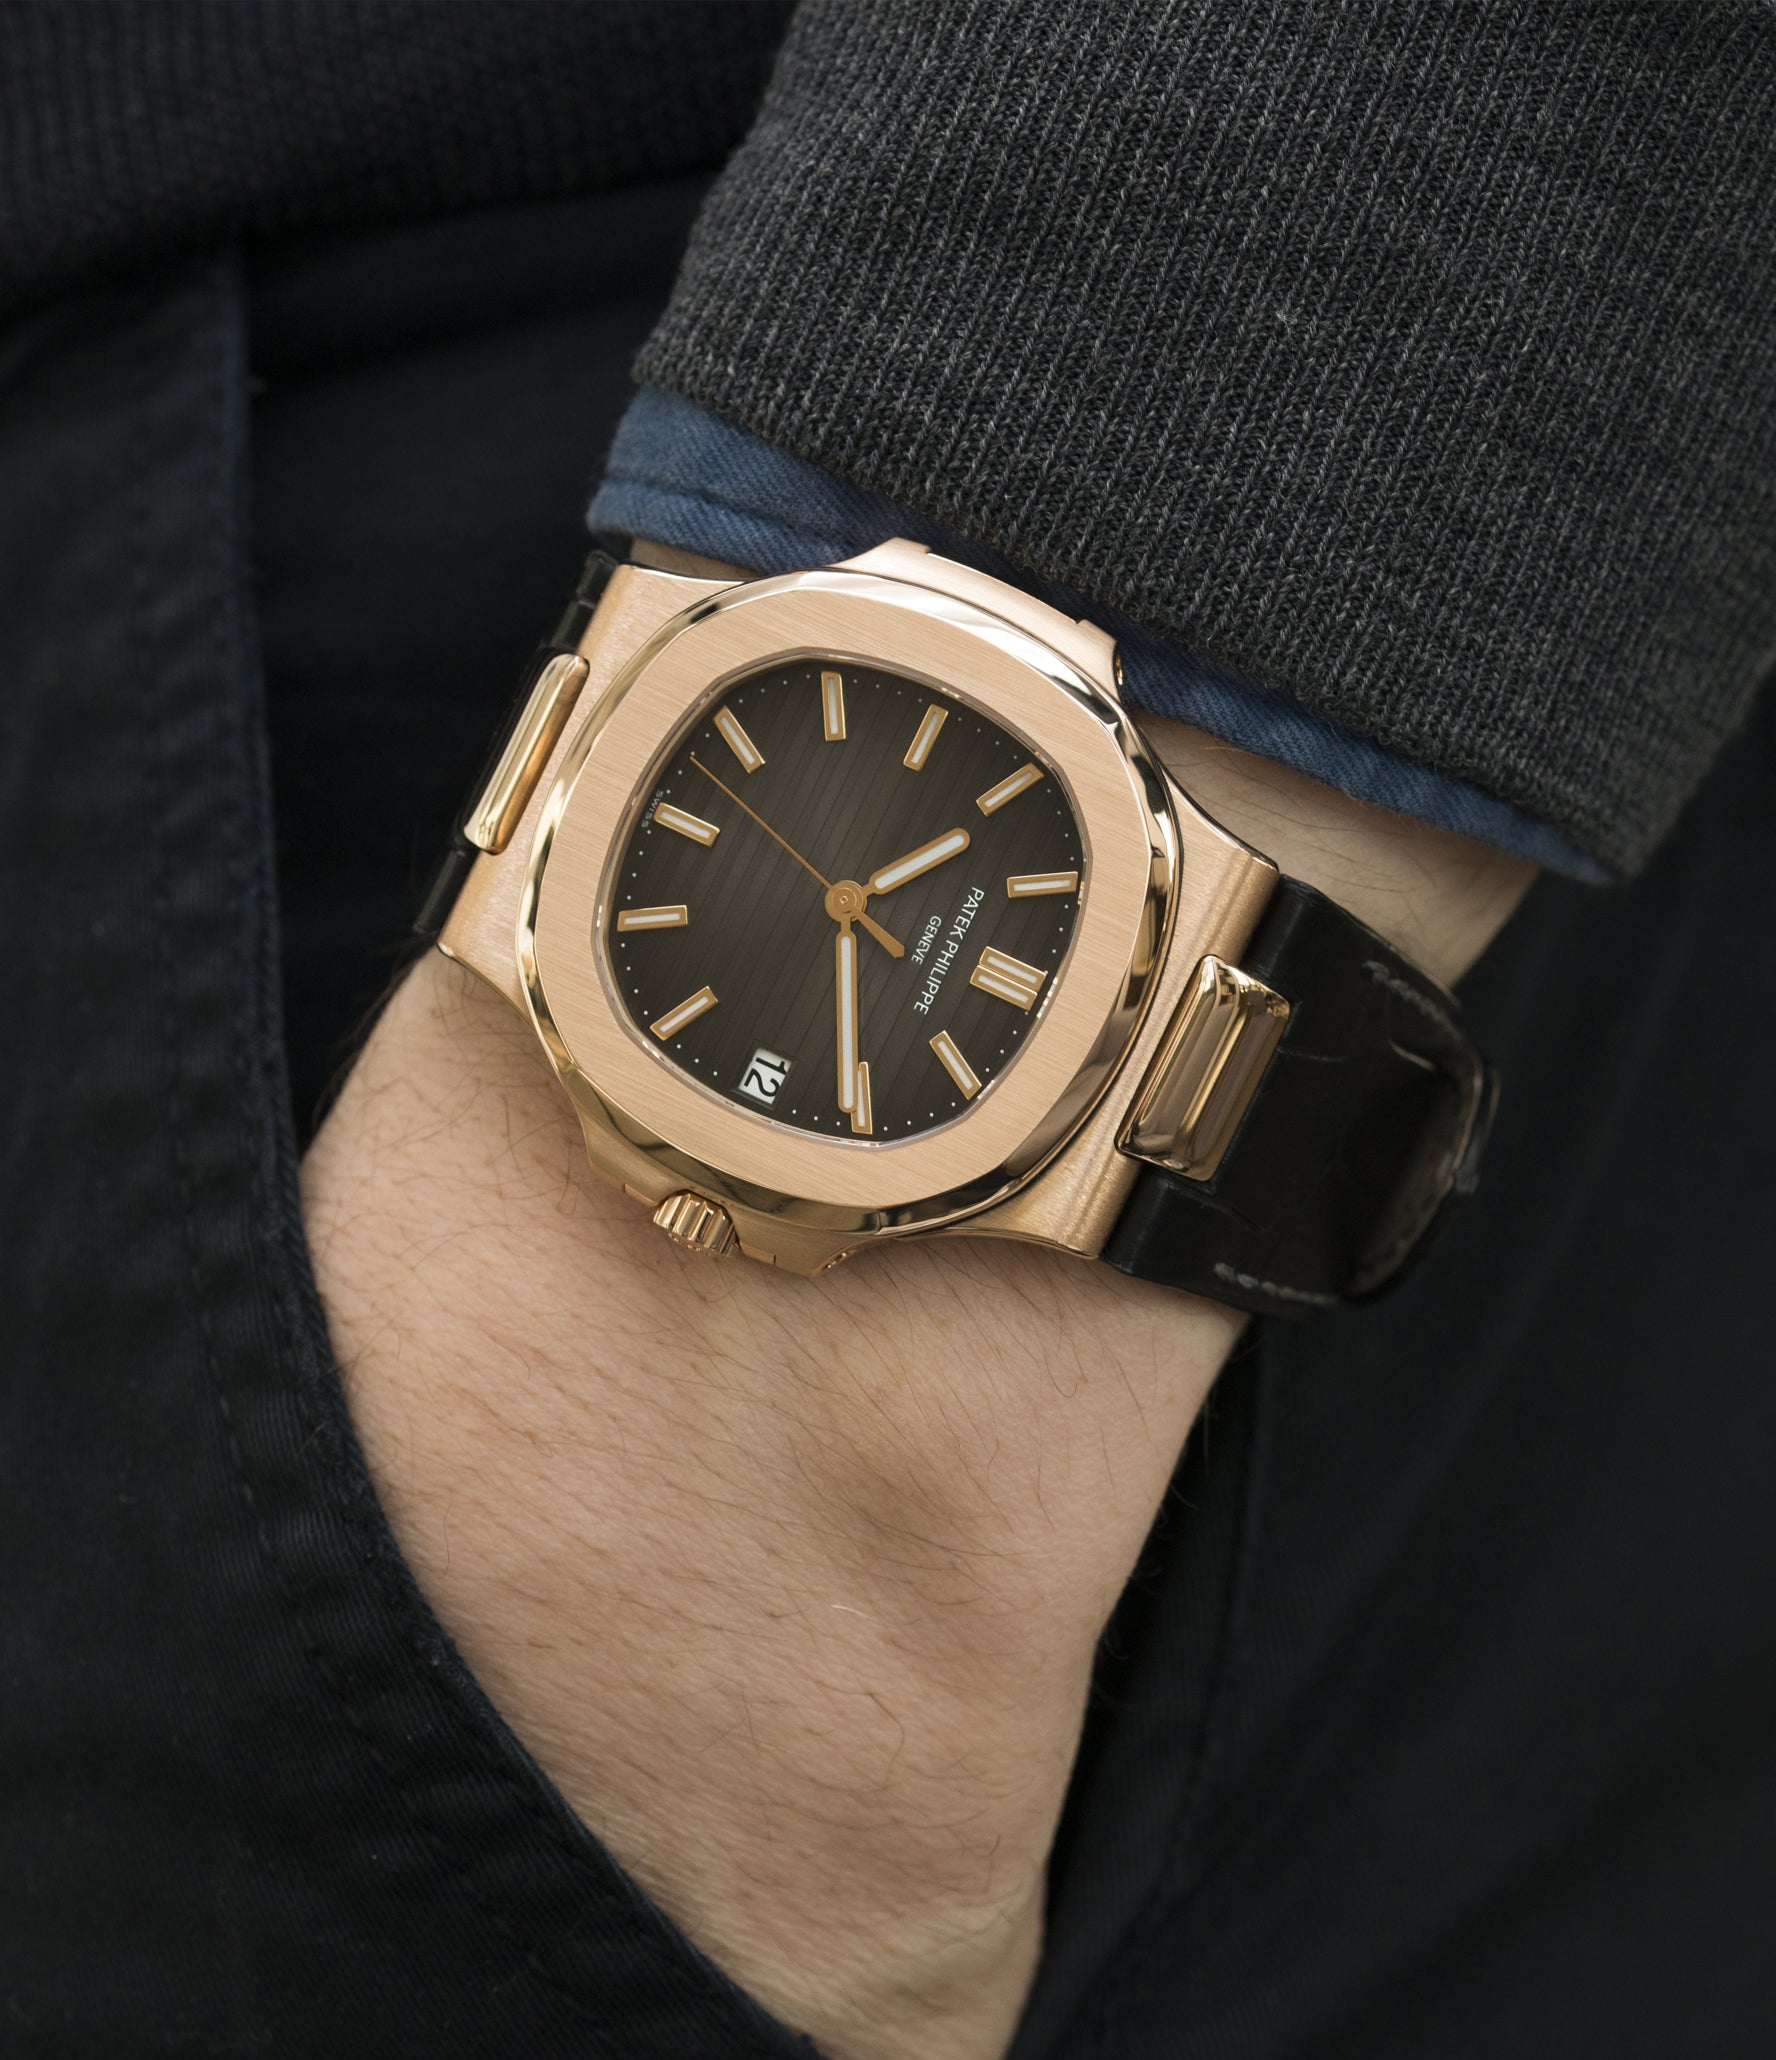 buy Patek Philippe Nautilus 5711 rose gold dress watch chocolate brown dial for sale online at A Collected Man London UK specialist of rare watches